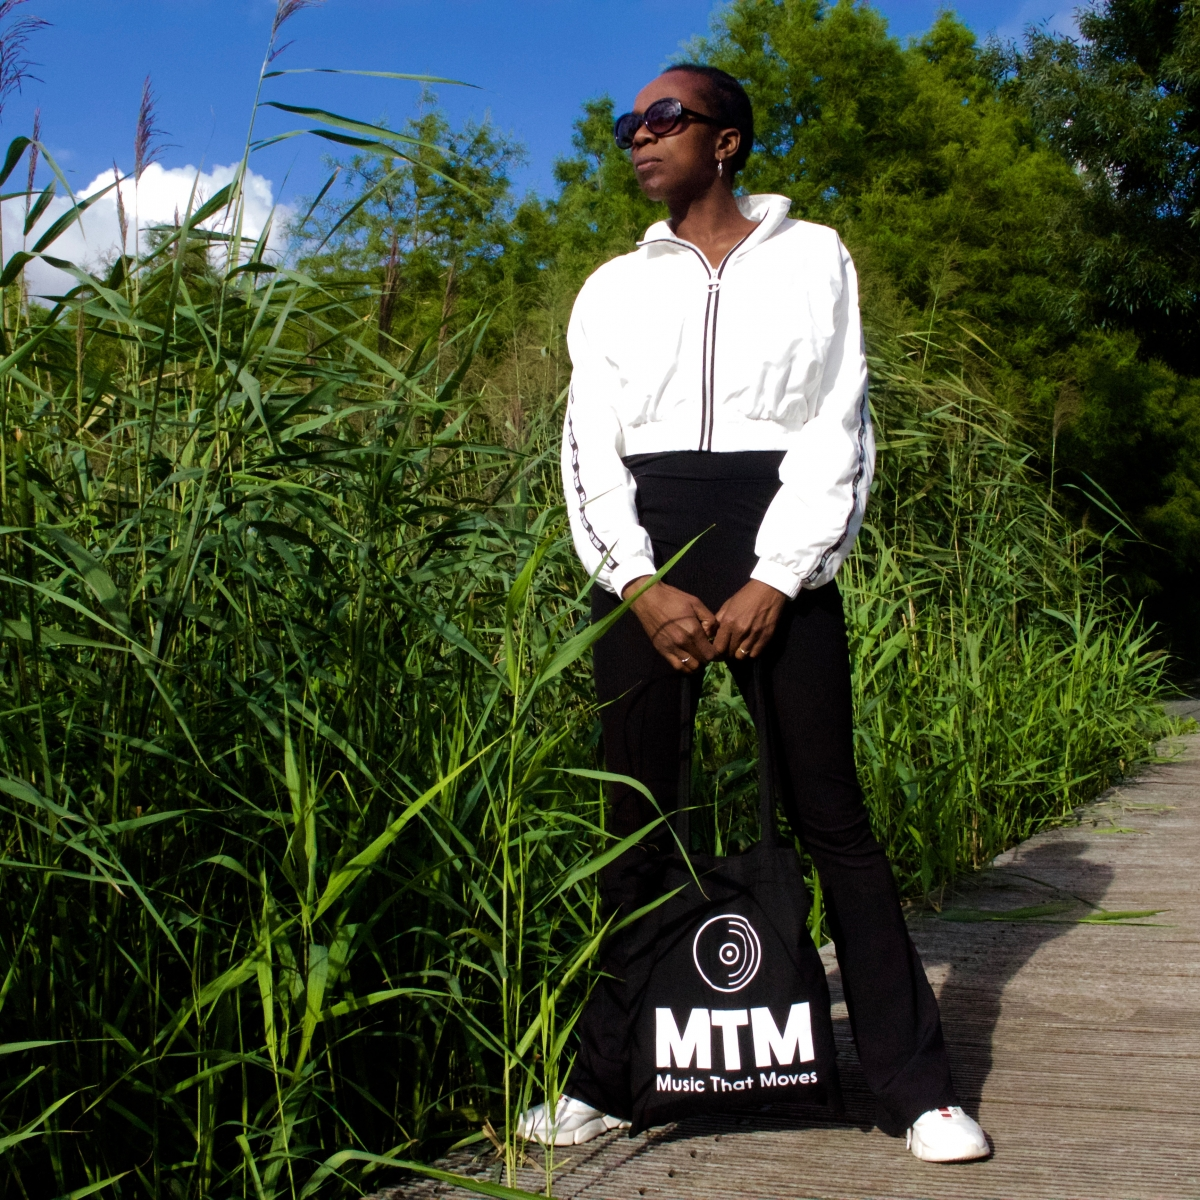 Limited MTM Bags now available on Bandcamp